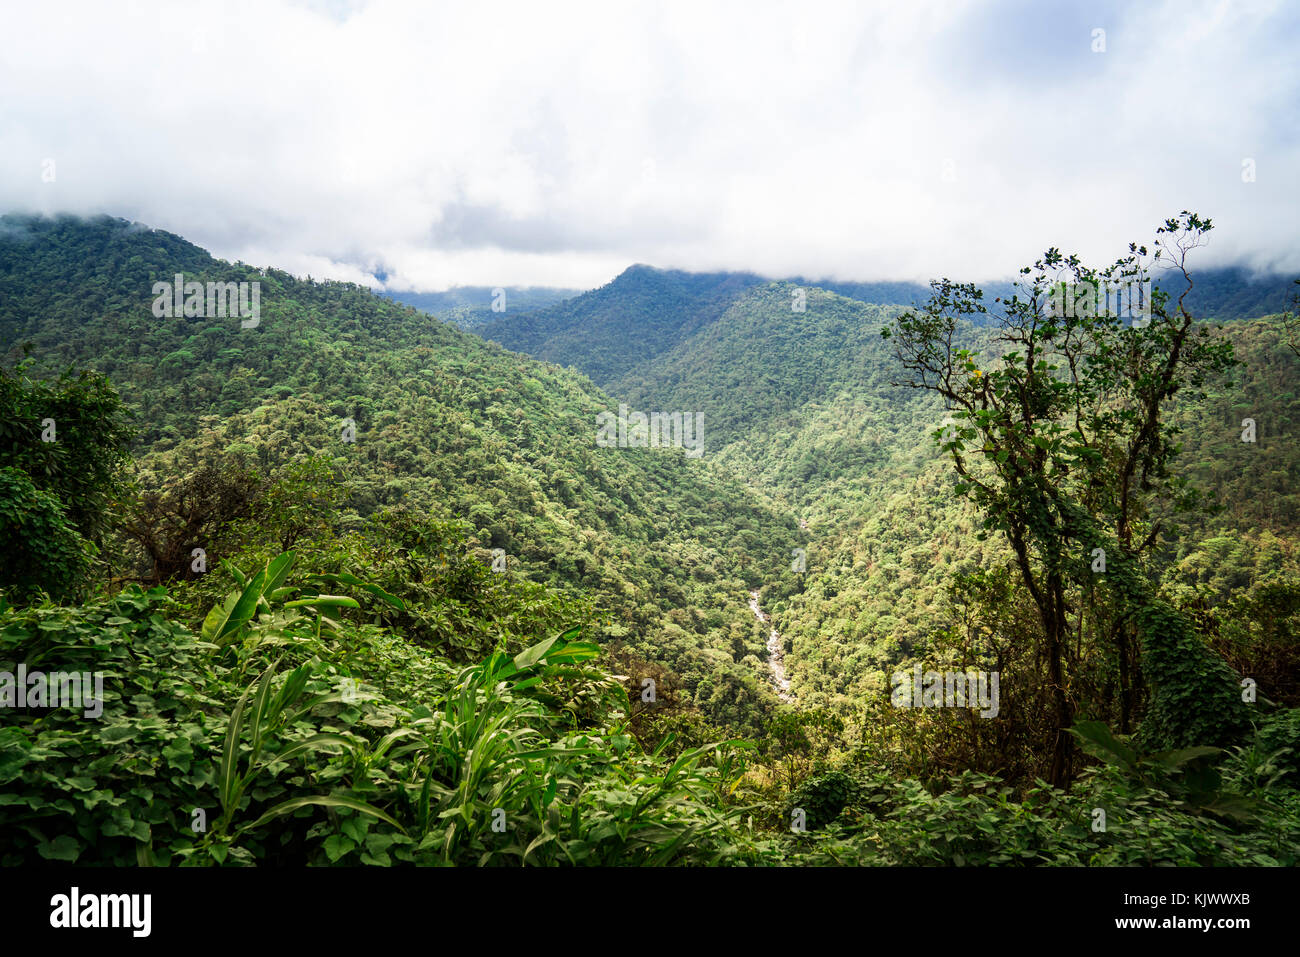 Braulio Carrillo National Park has very high mountains and deep valleys. The tropical rain forest covers everything. - Stock Image